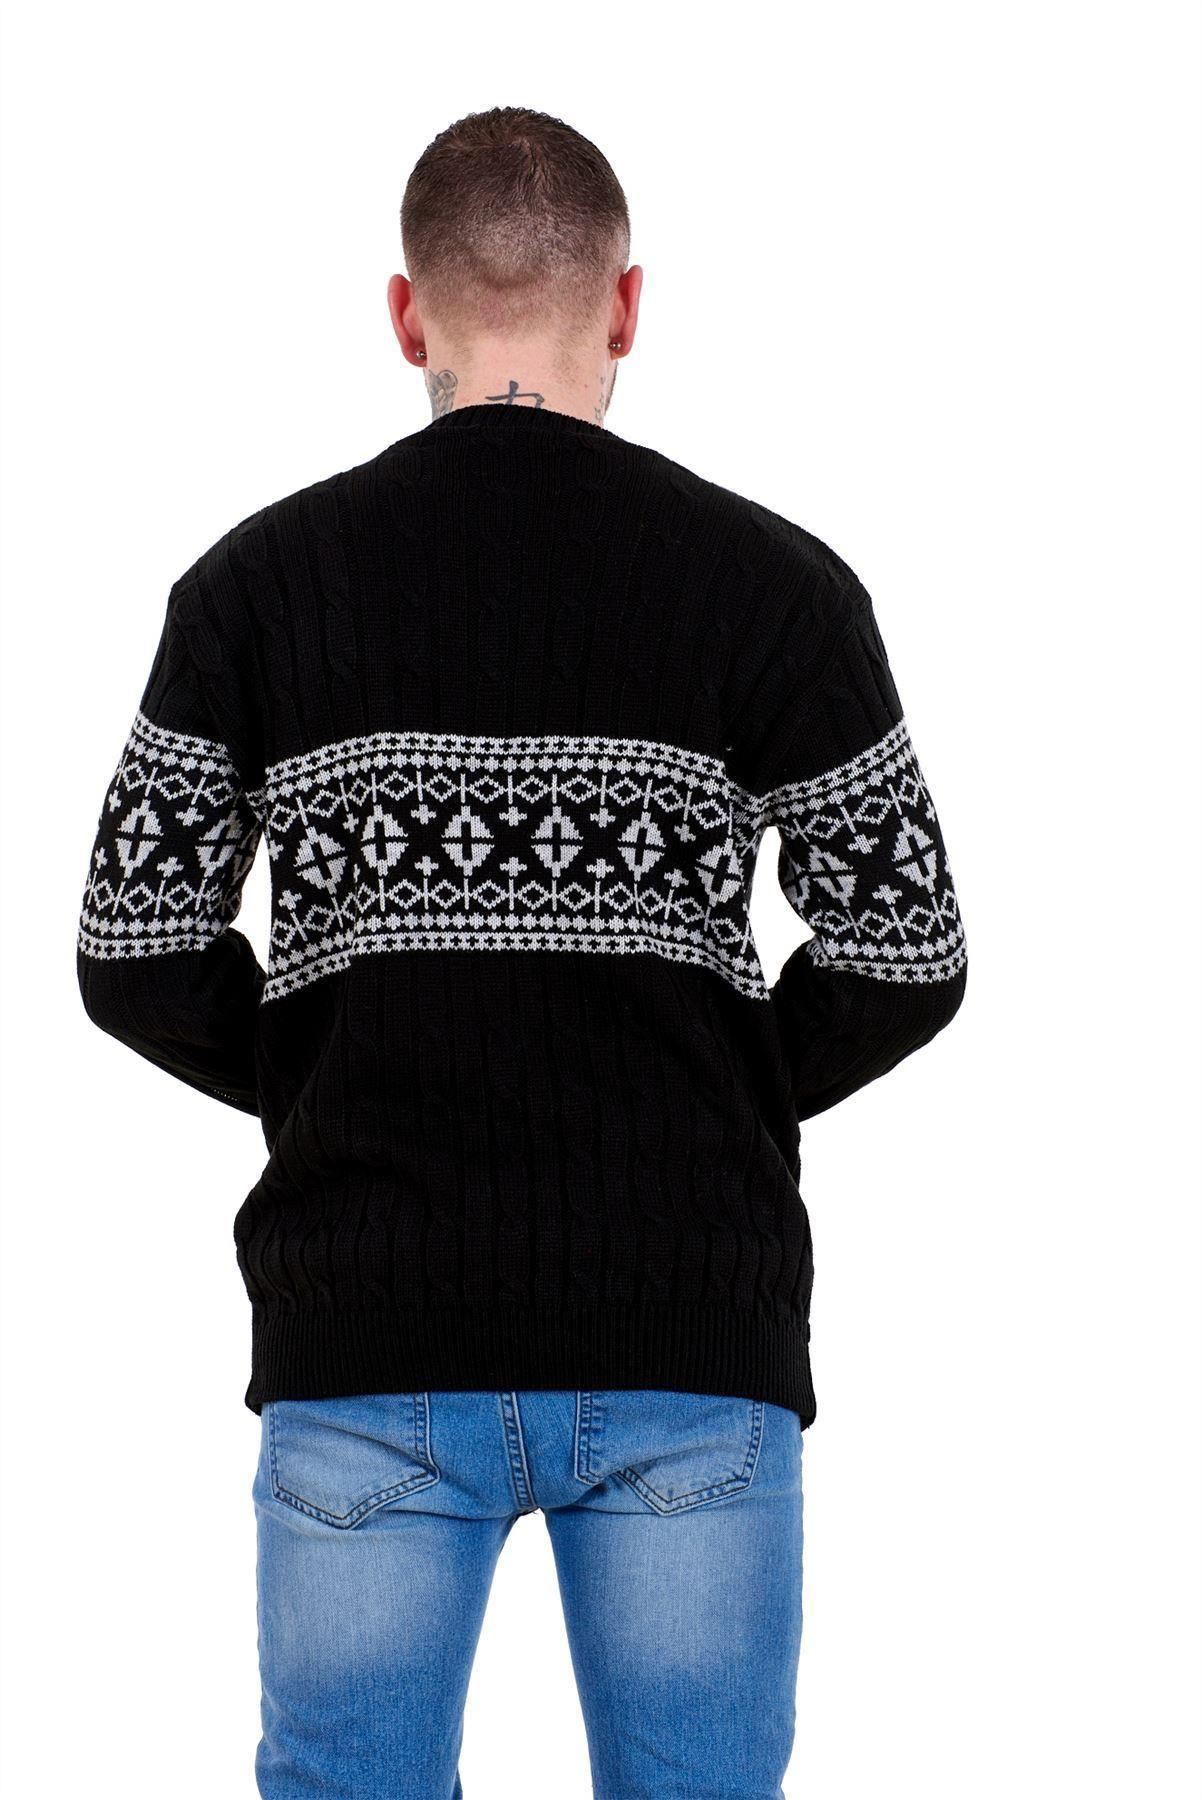 Mens-New-Cable-Knit-Jacquard-Long-Sleeve-Pullover-Jumper-Sweater-S-to-XL thumbnail 3